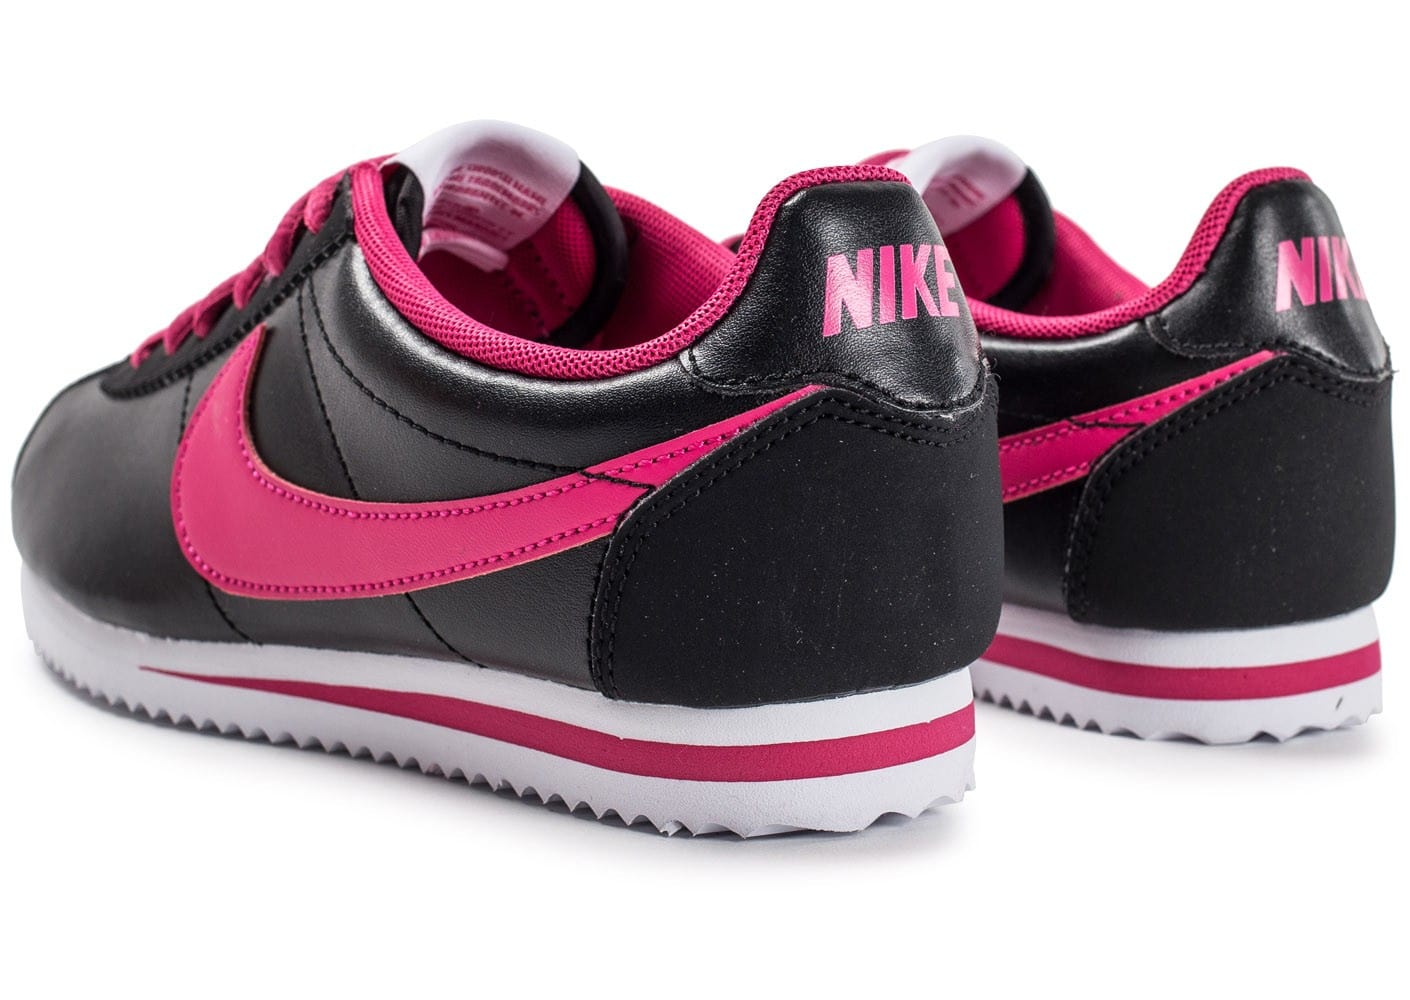 nike cortez junior cuir noire et rose chaussures chaussures chausport. Black Bedroom Furniture Sets. Home Design Ideas